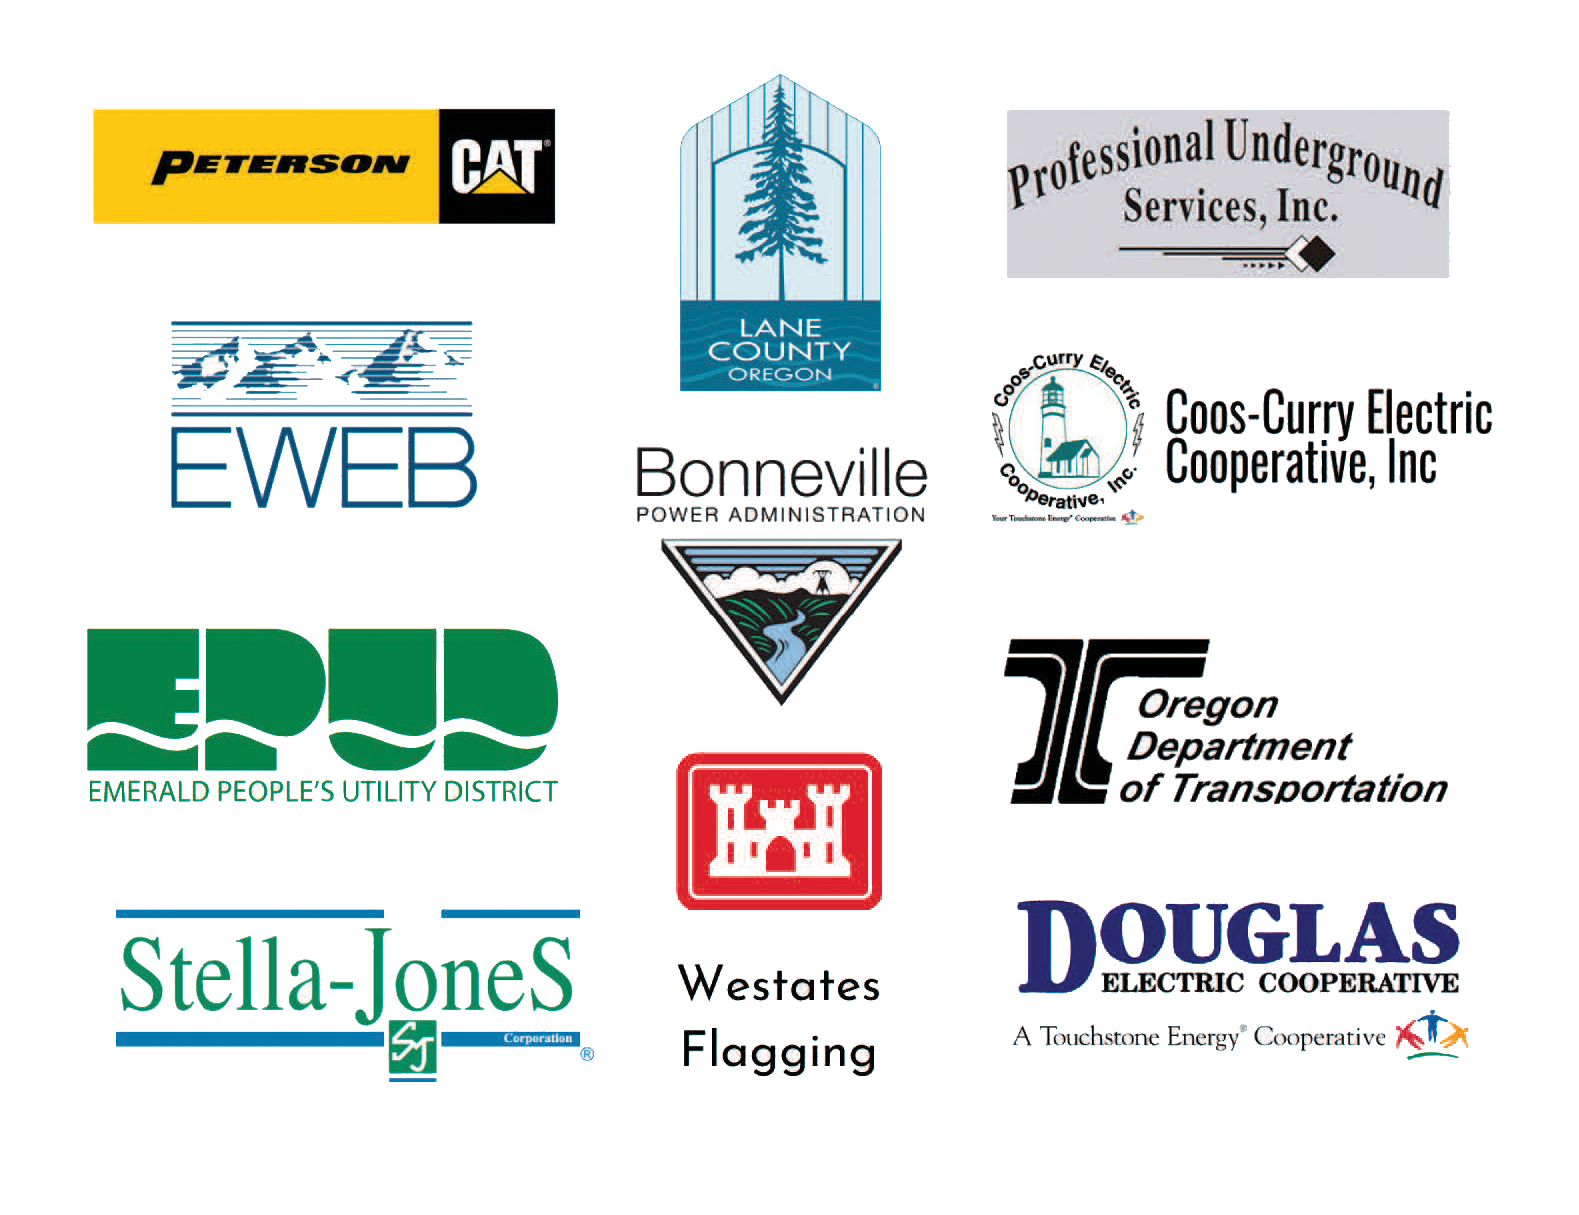 Logos for: Peterson CAT, Lane County Oregon, Professional Underground Services Inc, EWEB, Bonneville Power Administration, Coos-Curry Electric Cooperative Inc, Emerald People's Utility District, Oregon Department of Transportation, Stella-Jones, Westates Flagging, and Douglas Electric Cooperative.